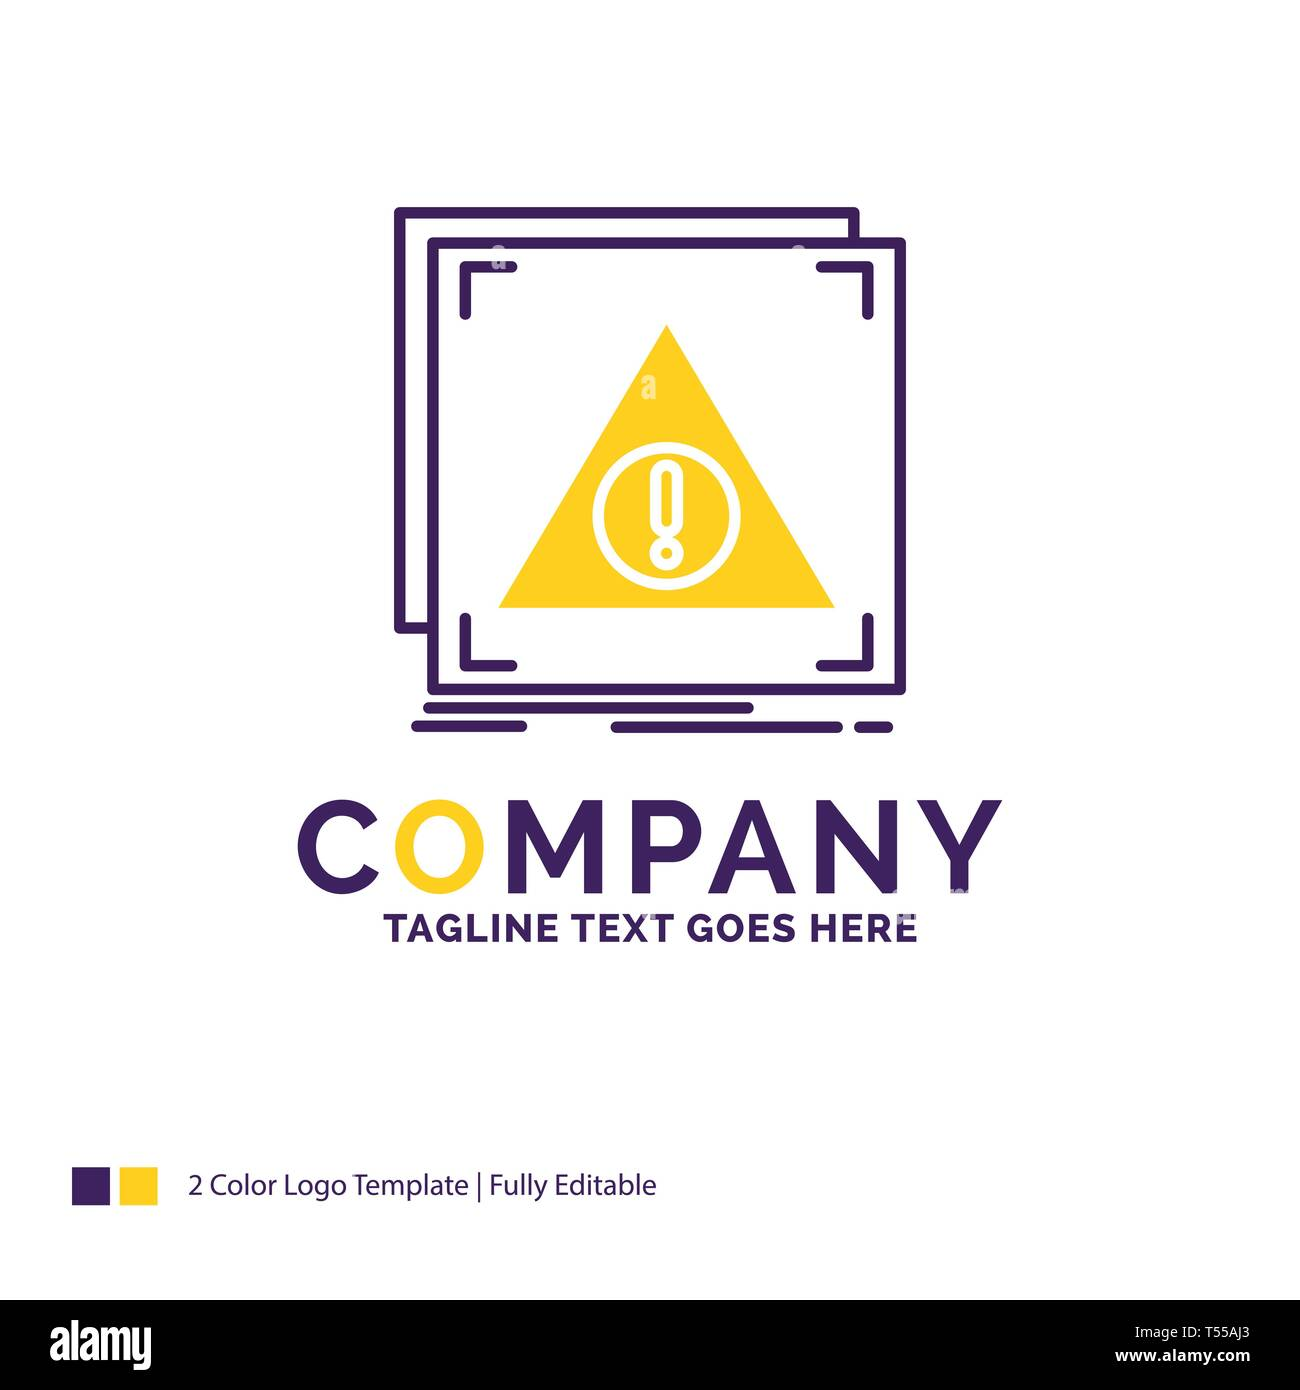 Company Name Logo Design For Error, Application, Denied, server, alert. Purple and yellow Brand Name Design with place for Tagline. Creative Logo temp - Stock Image